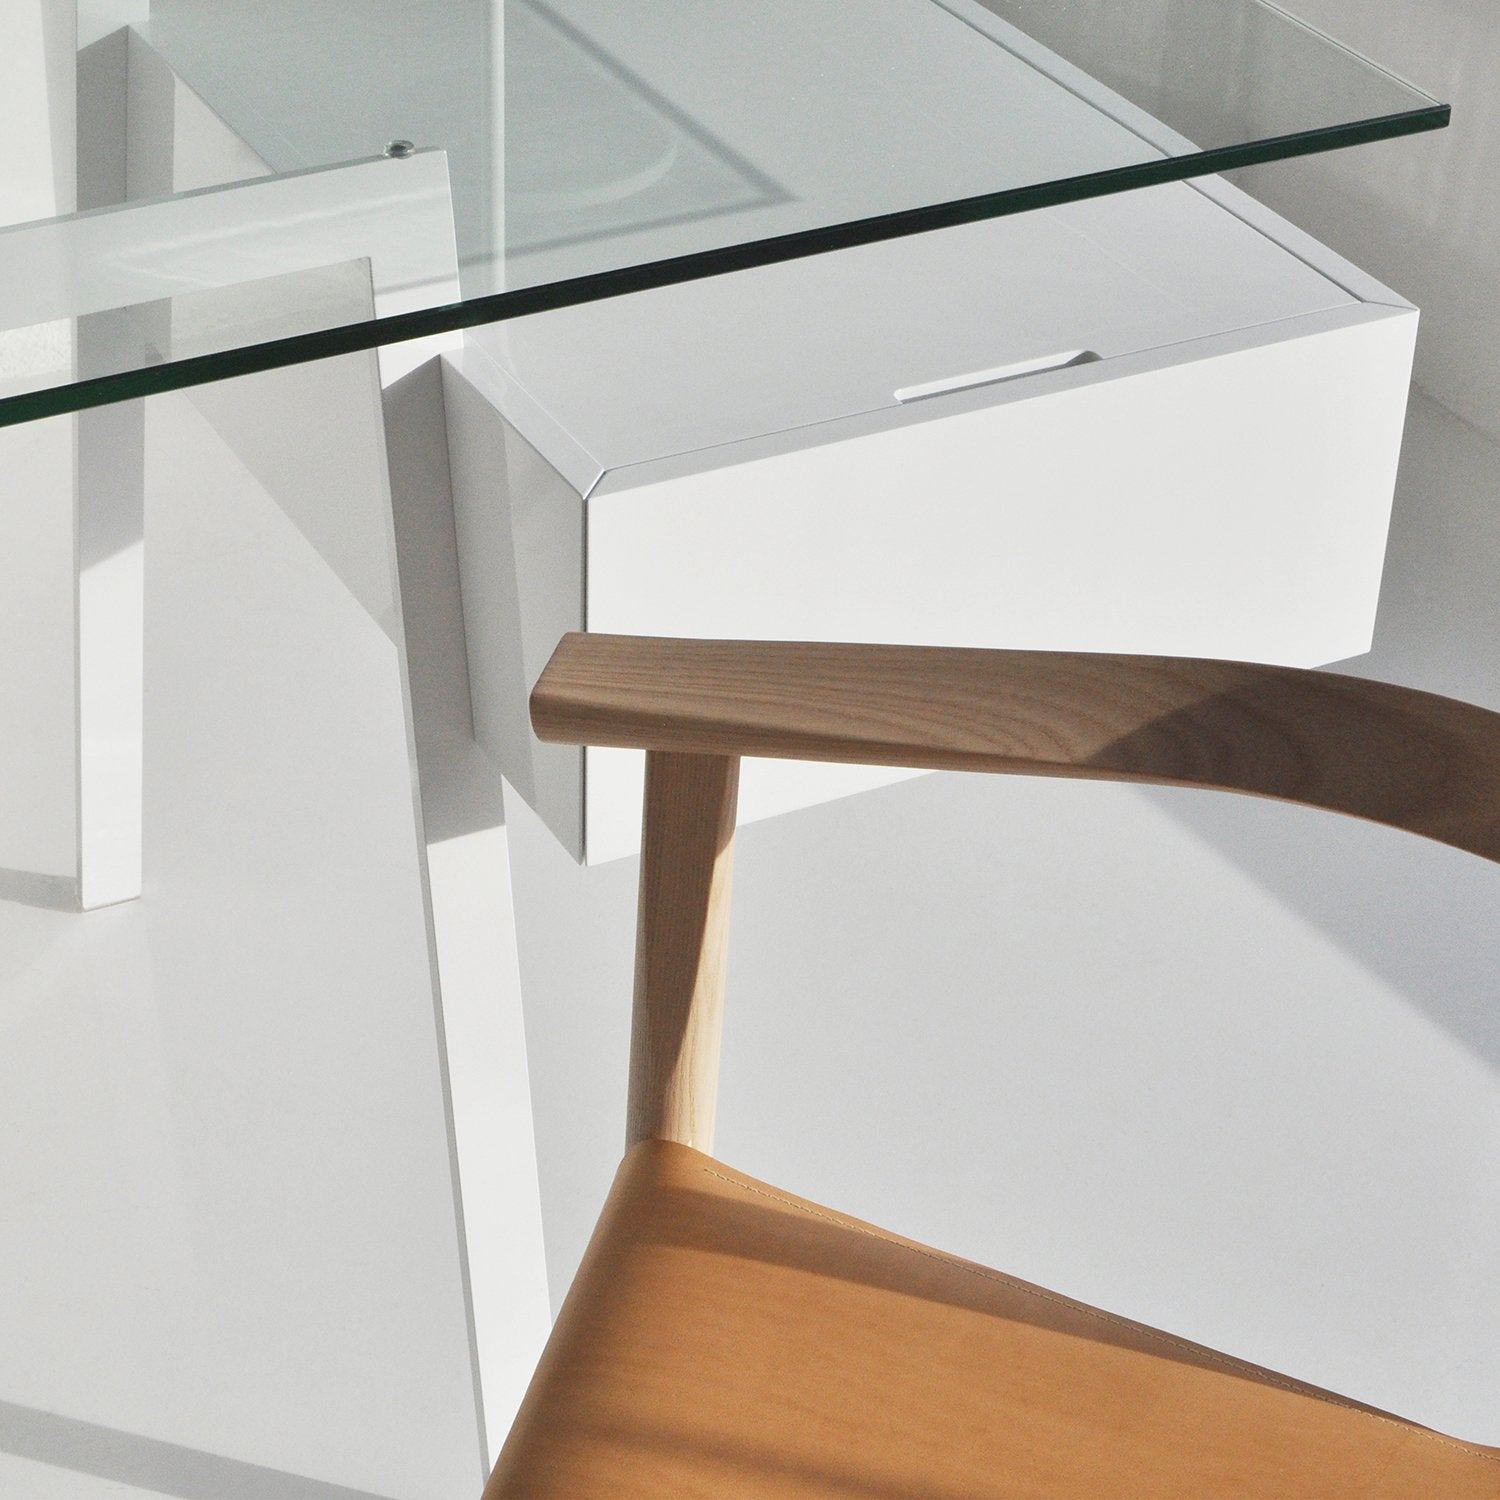 Homework 2 Desk: Single Drawers